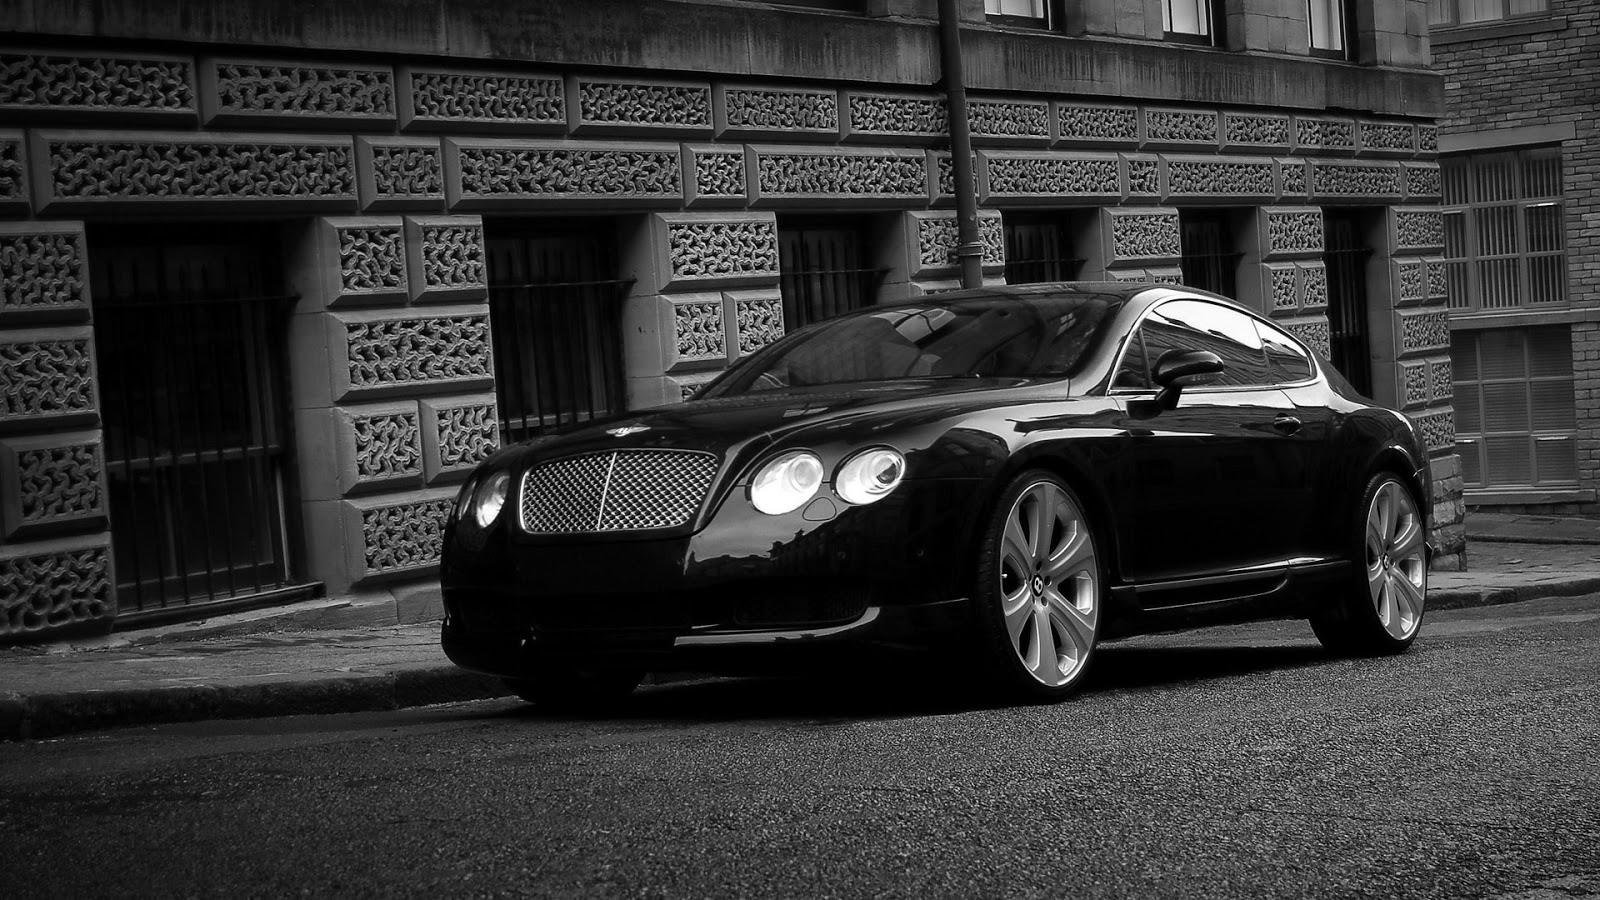 Black Bentley Continental GT S